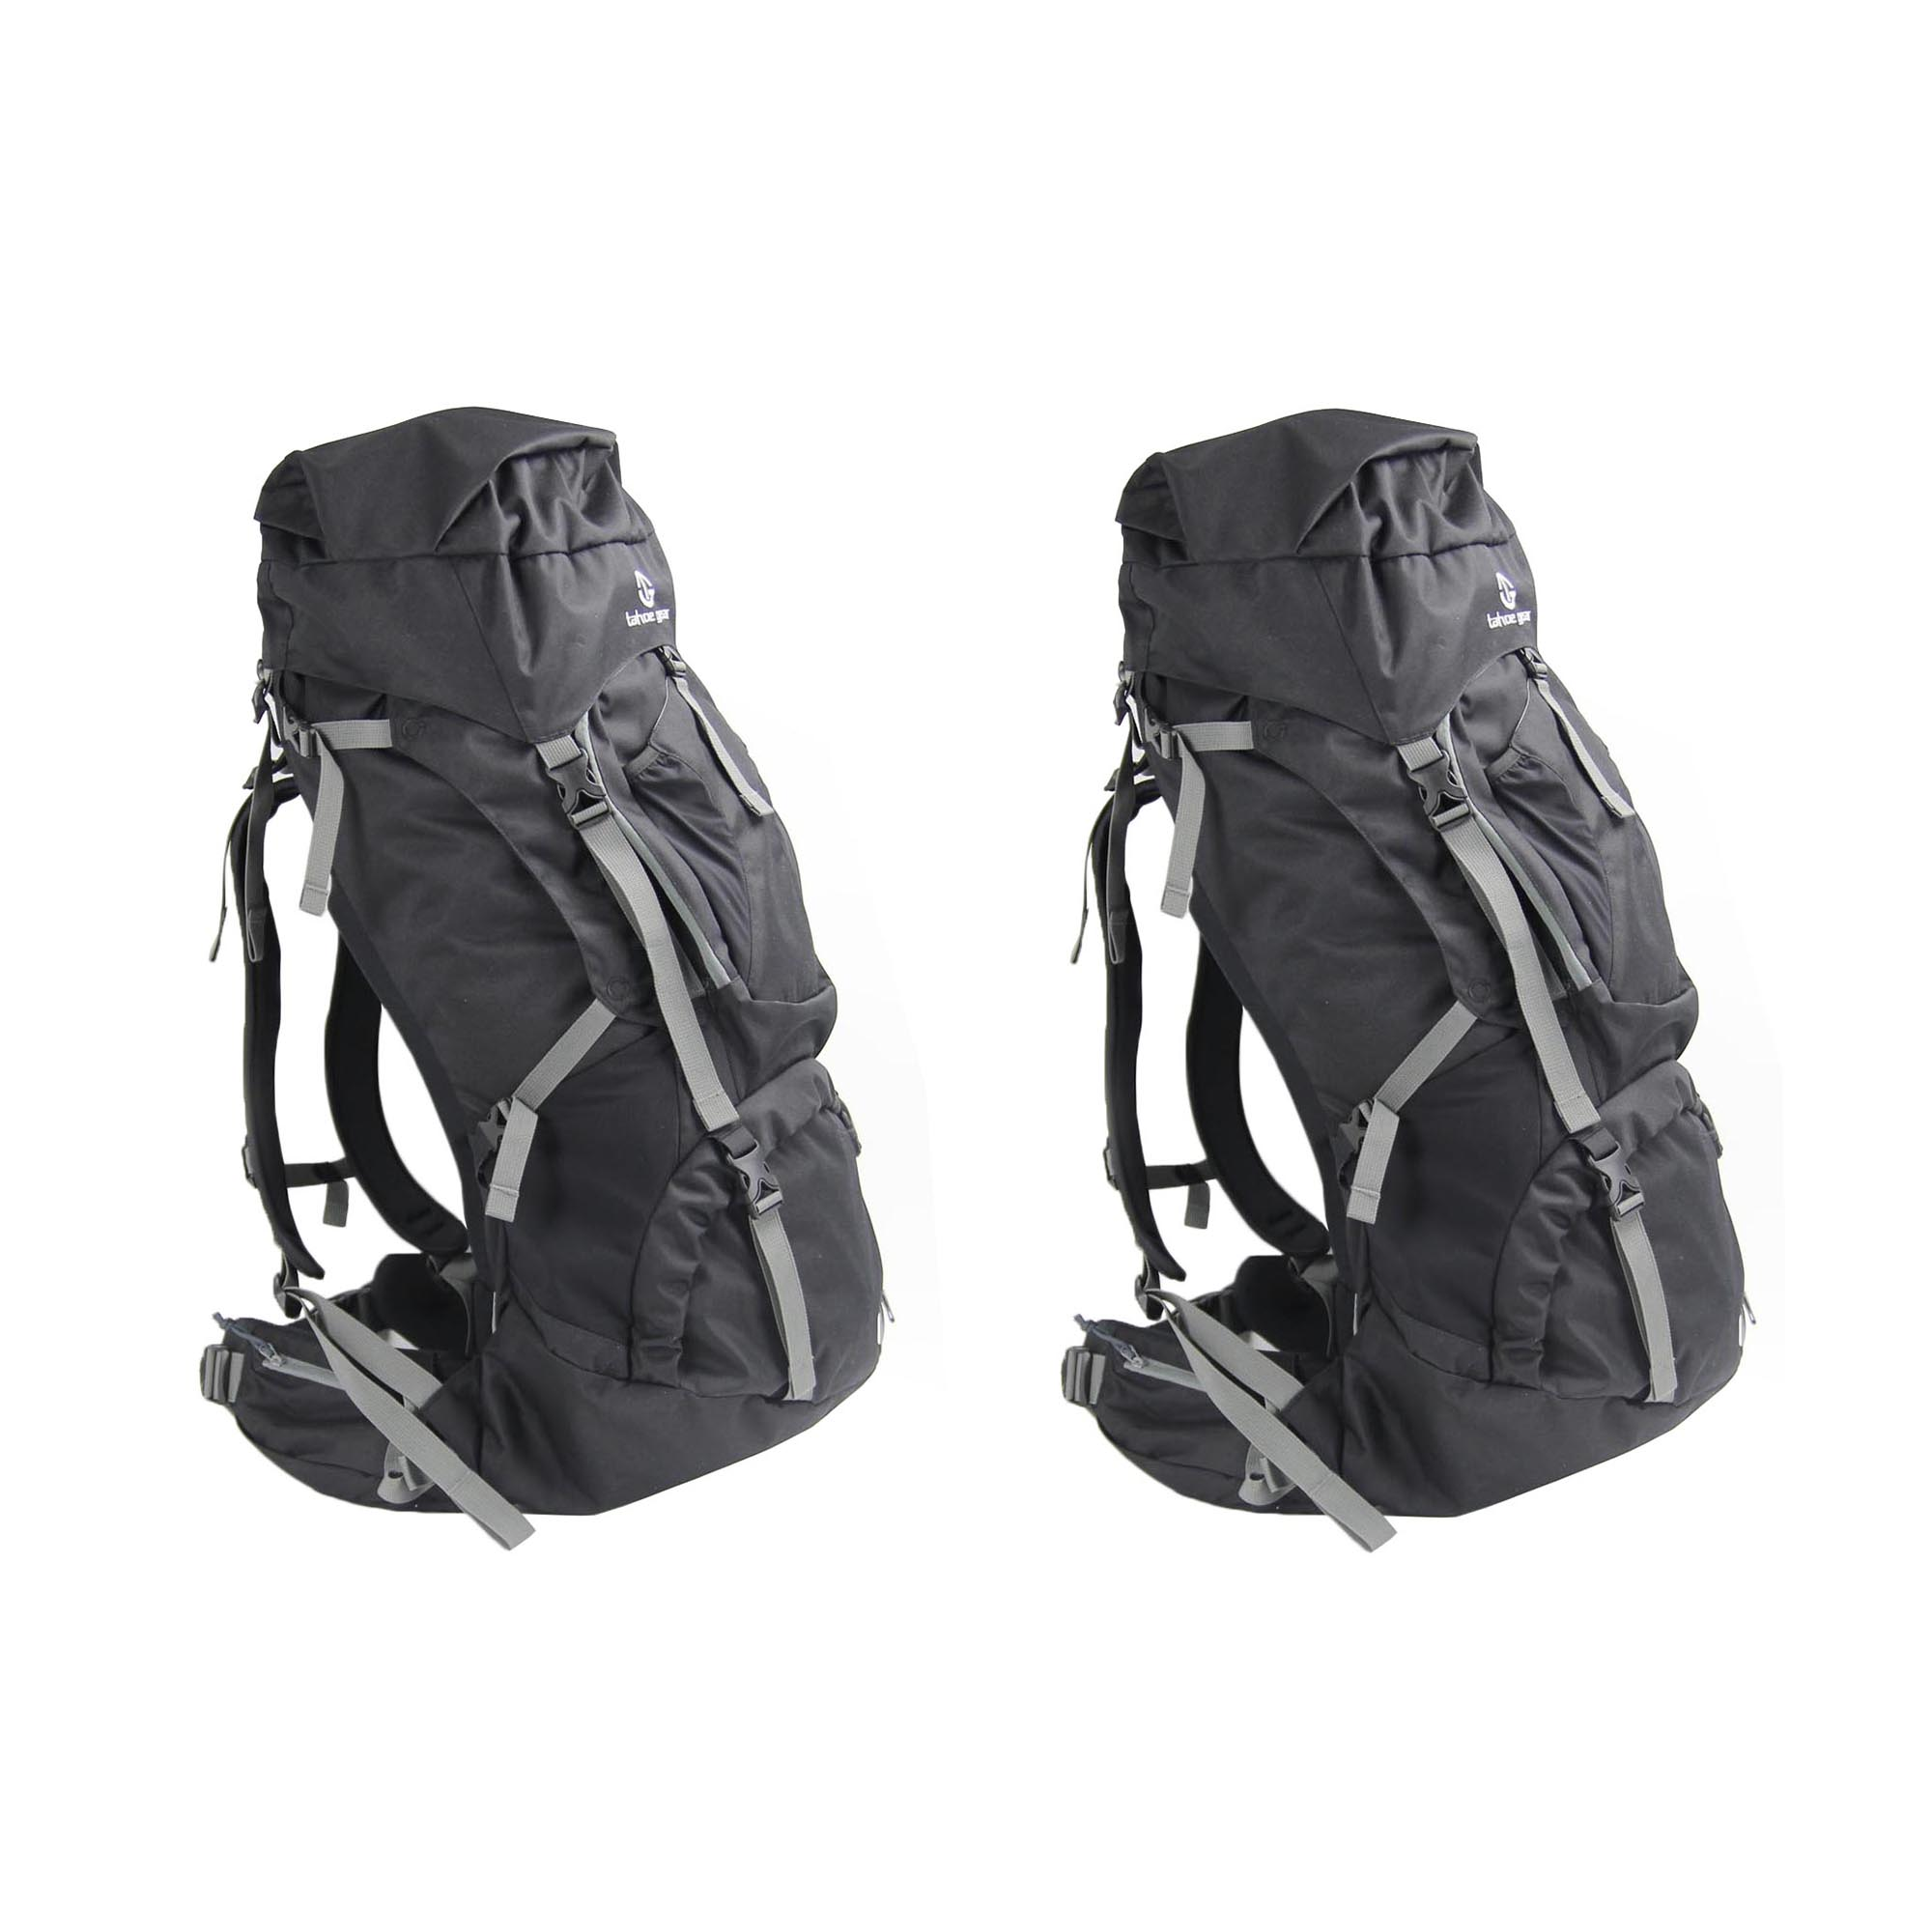 Country Kitchen Fairbanks: Tahoe Gear Fairbanks 75L Premium Internal Frame Hiking